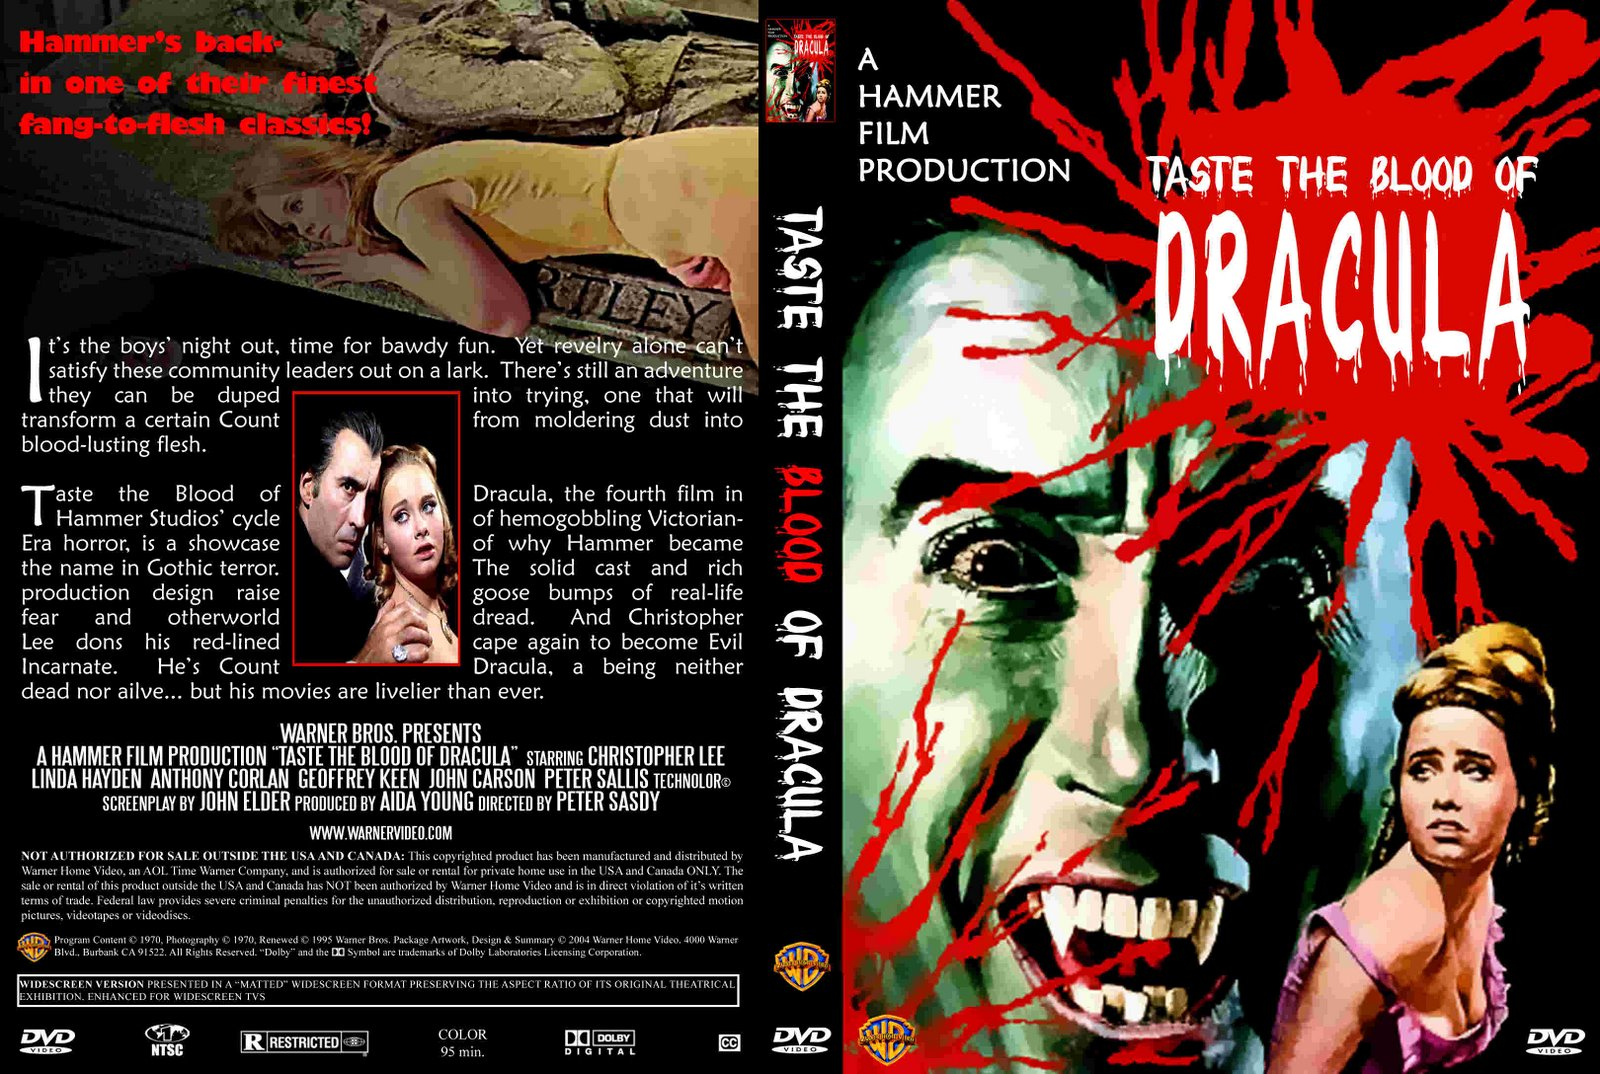 Taste the Blood of Dracula - DVD cover